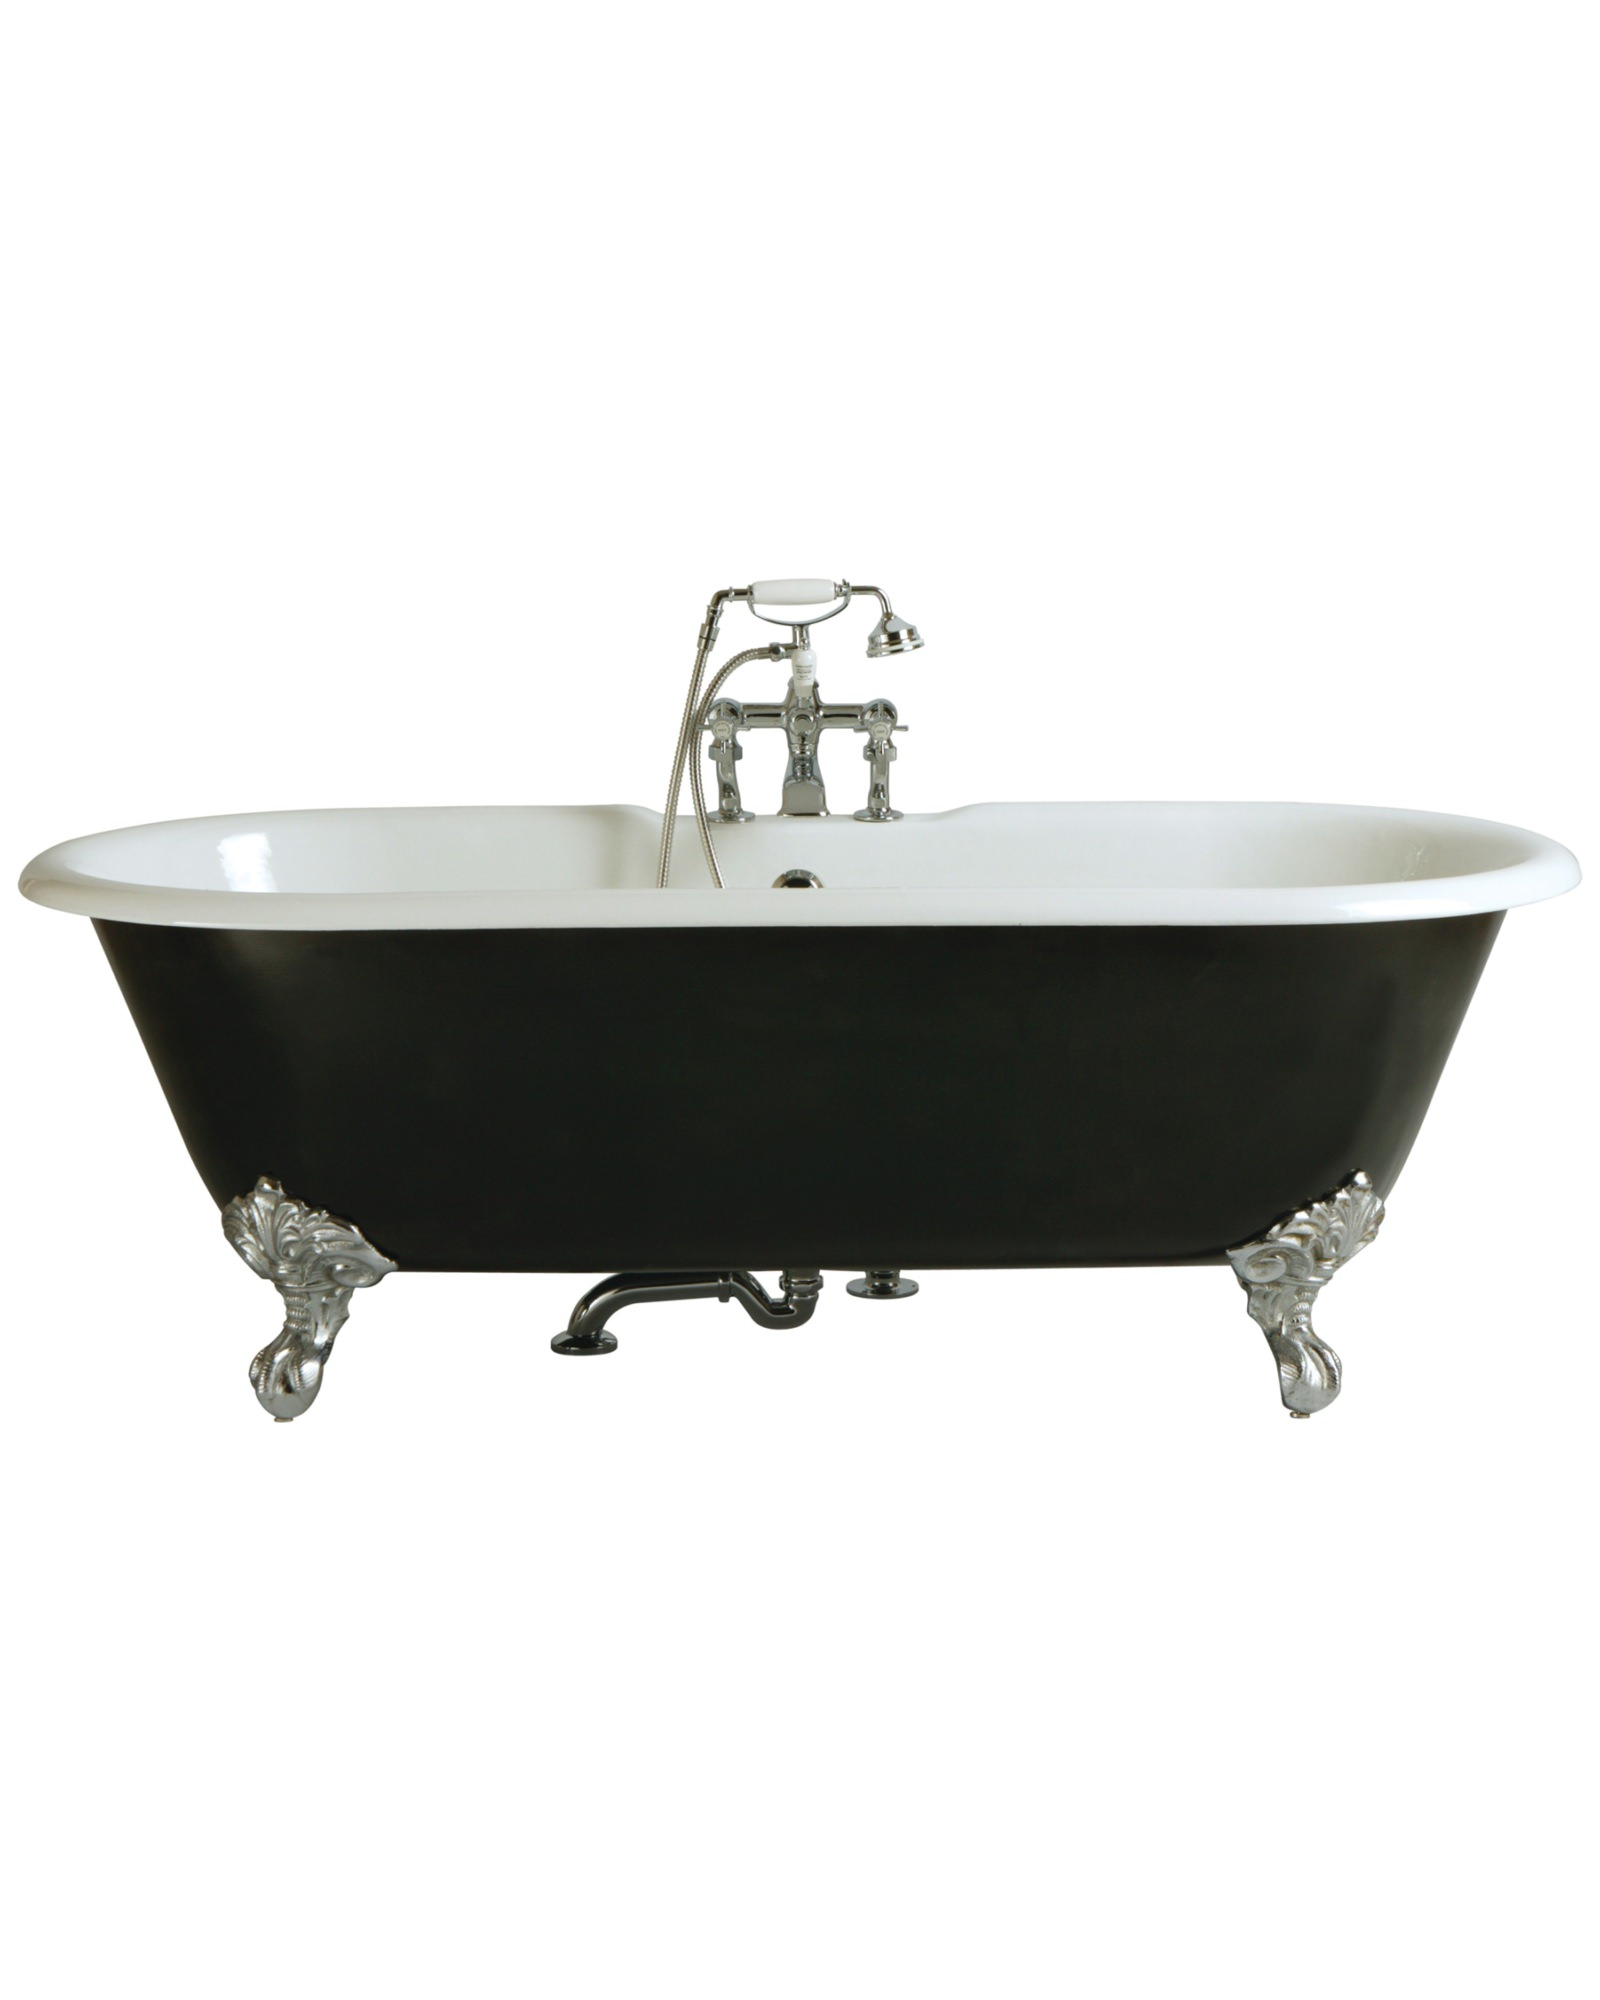 Buckingham 2 Taphole Cast Iron Bath With Feet 1700x770mm